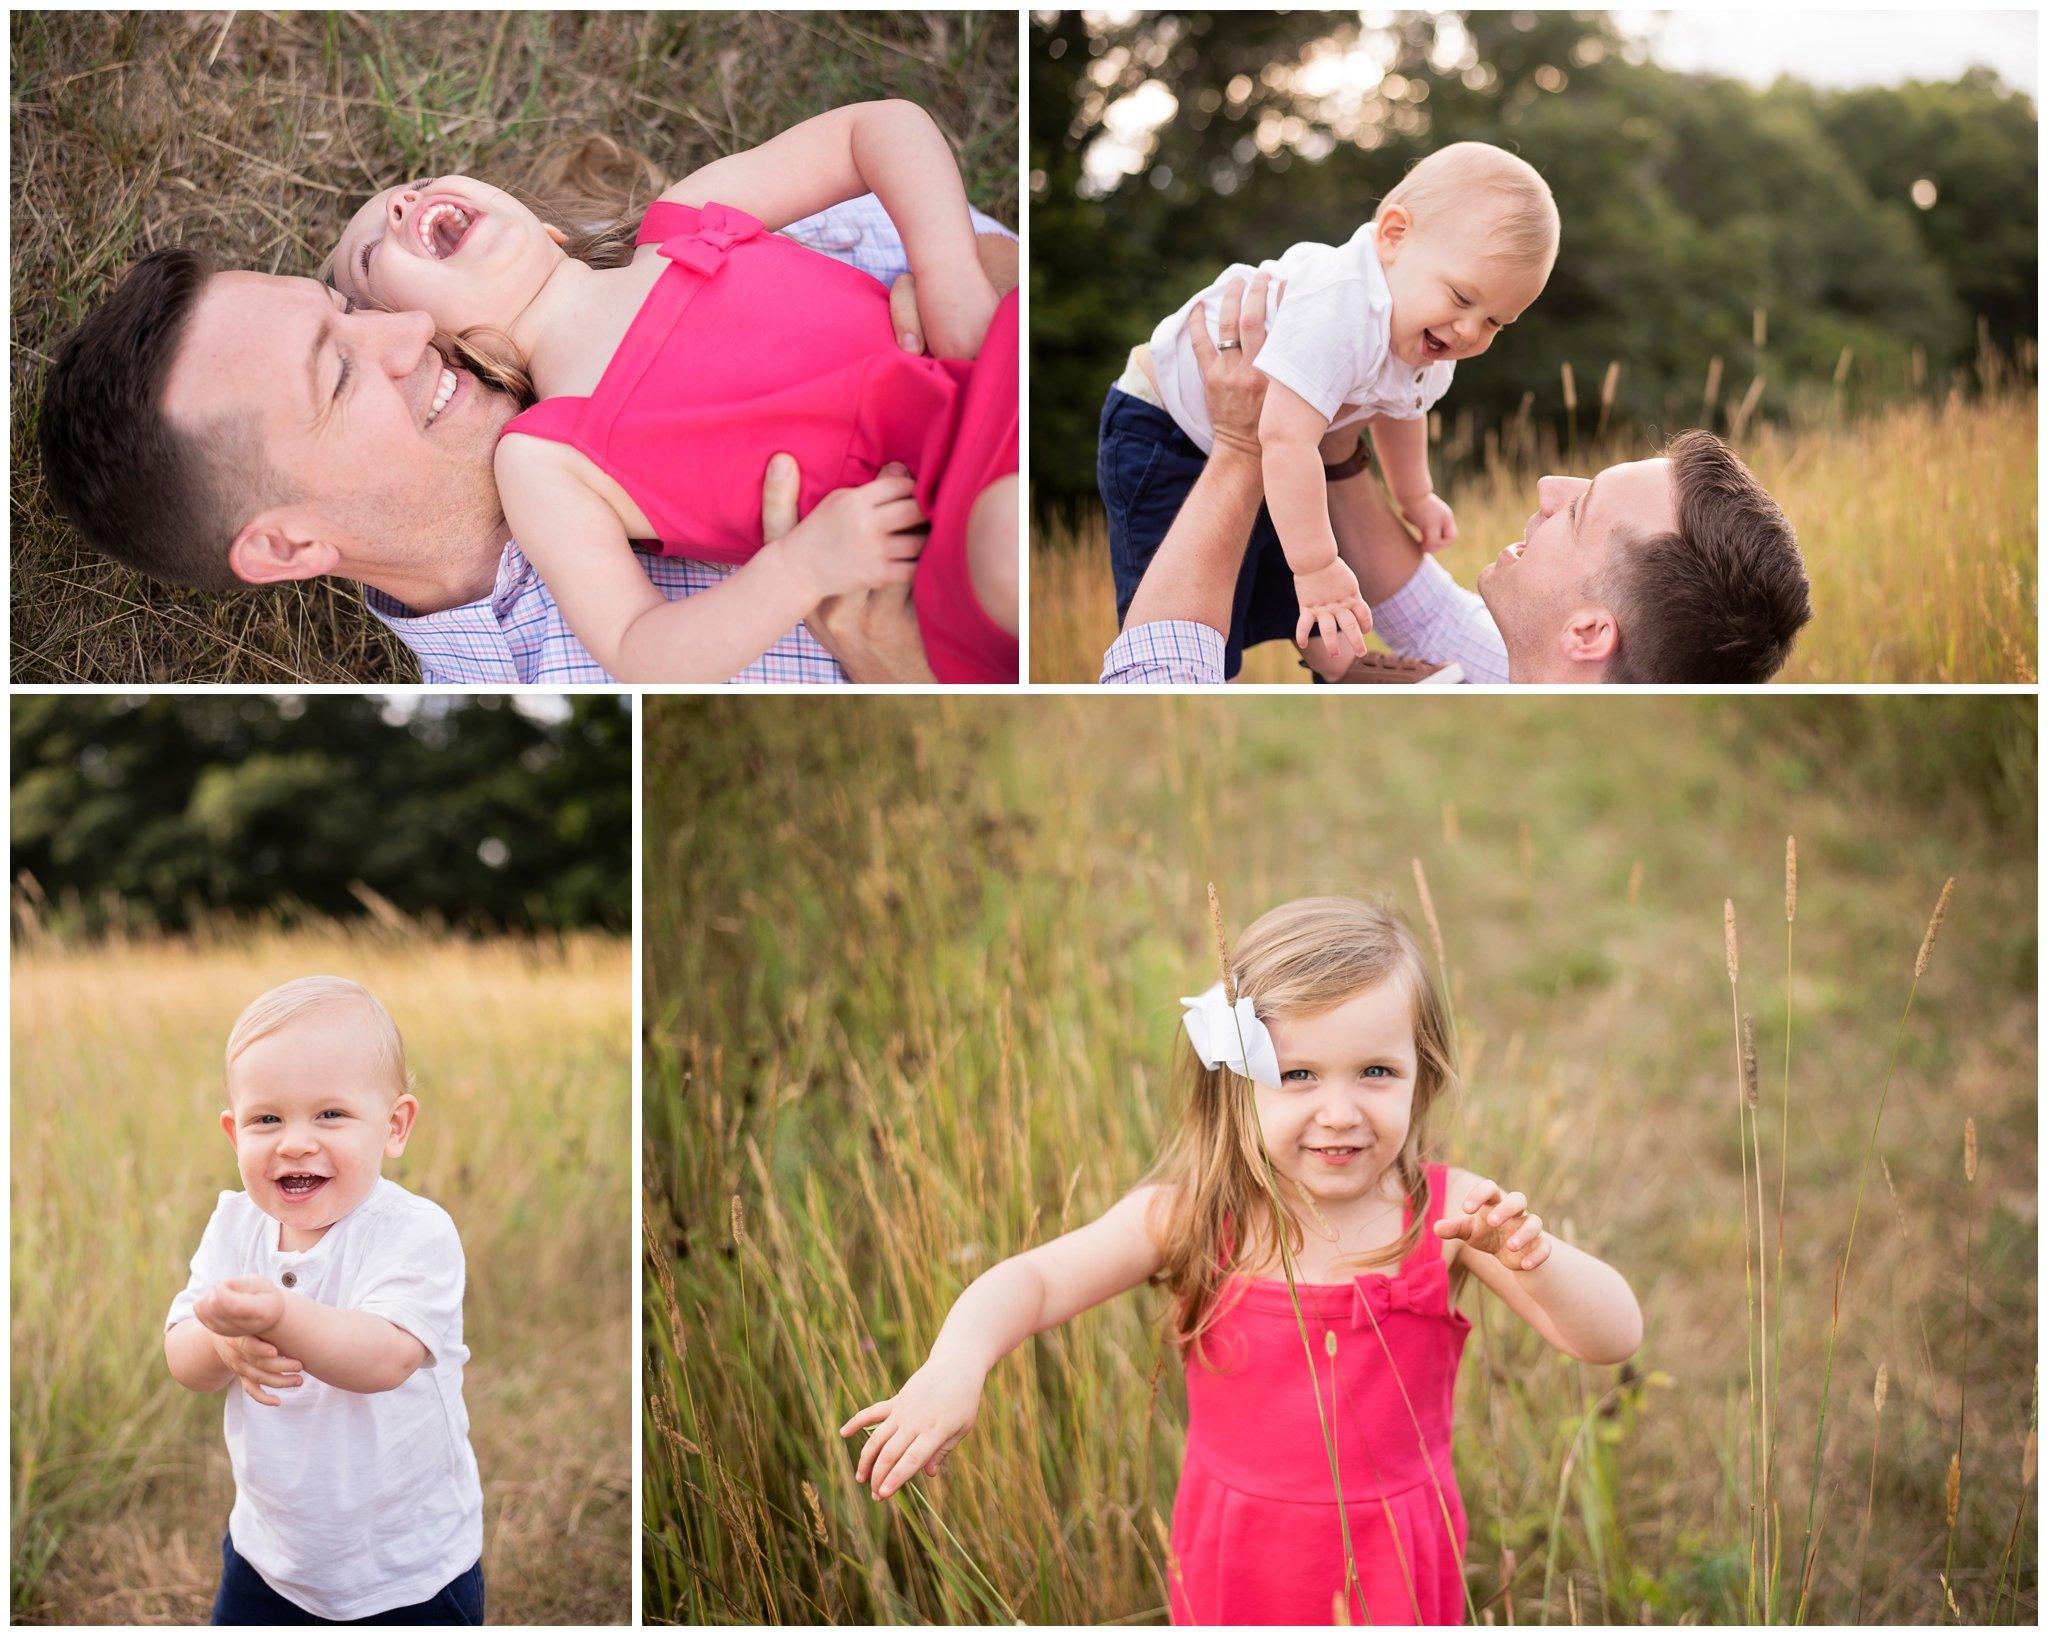 tips for a fun outdoor family photoshoot